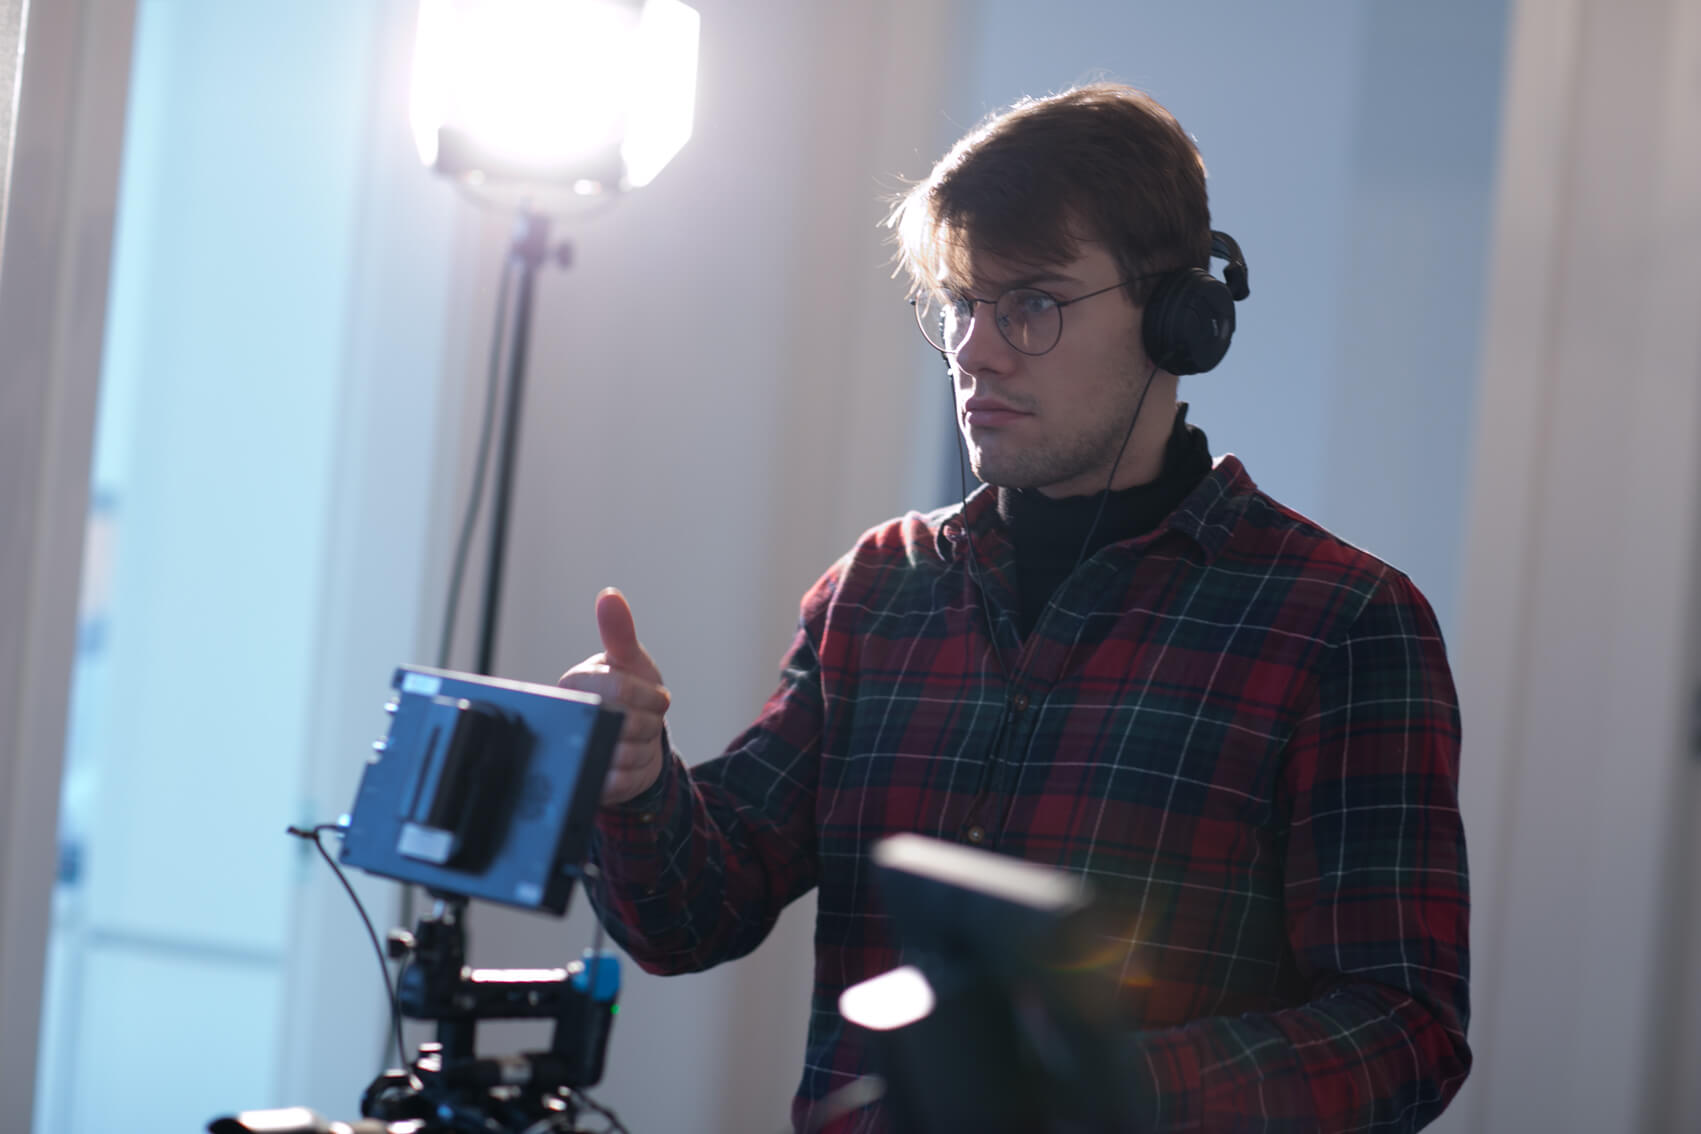 Mateusz on set behind the Camera